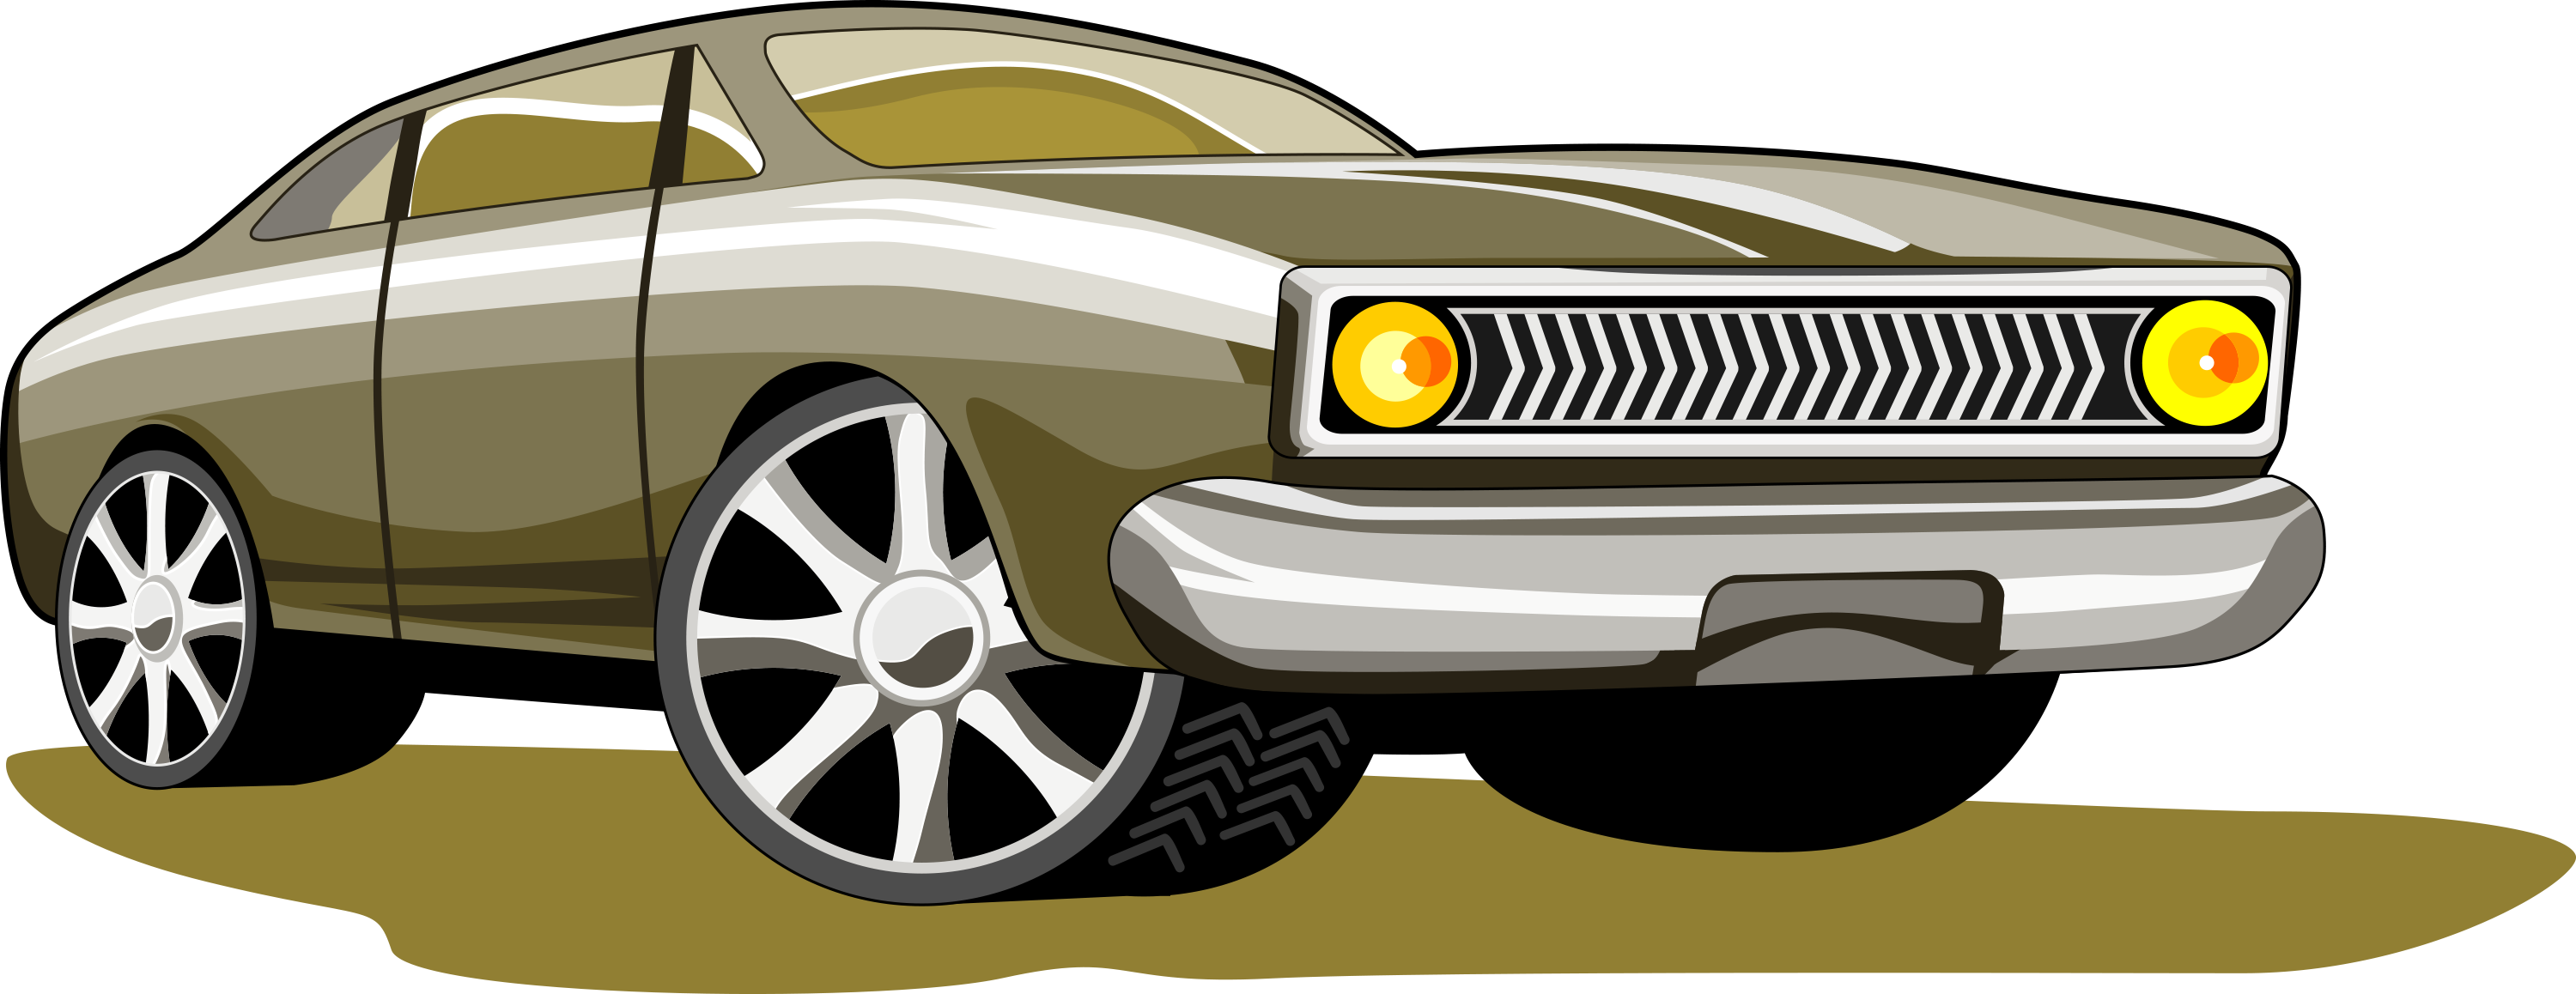 Car inside clipart clip freeuse stock This is How to Remove Window Tint clip freeuse stock